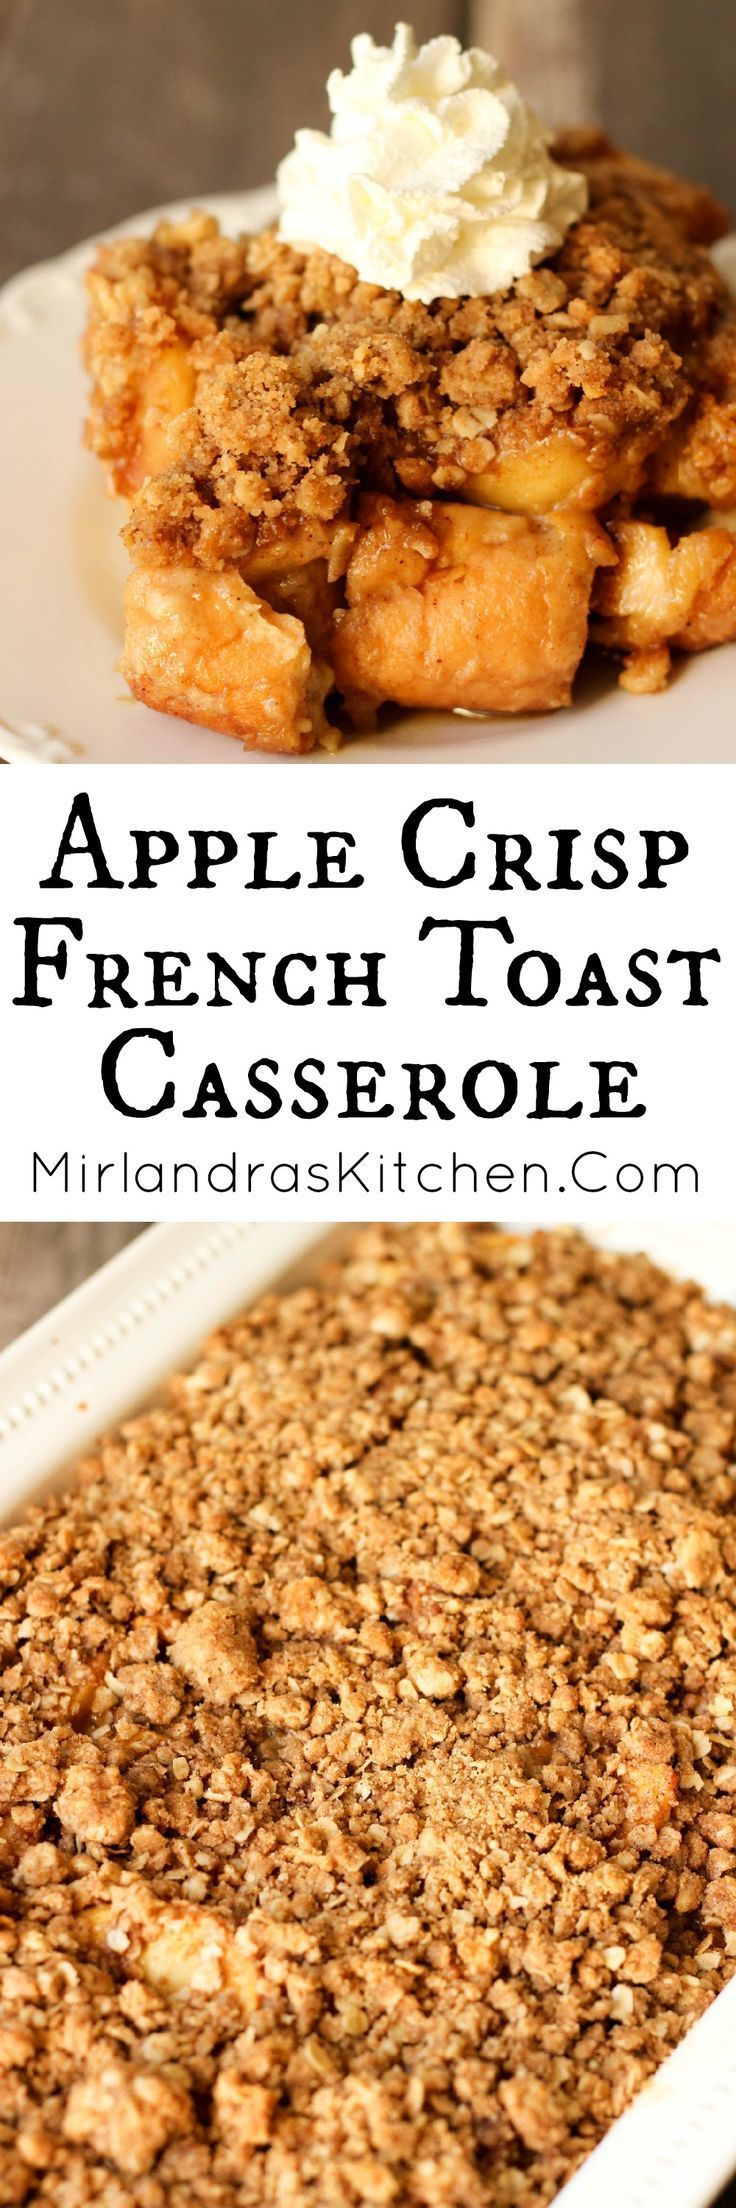 Apple Crisp French Toast Casserole is a yummy French toast smothered in buttery apples and crumbly crisp topping.  Make it the night before or same day.  It is such and easy breakfast for holiday company or a special family meal.